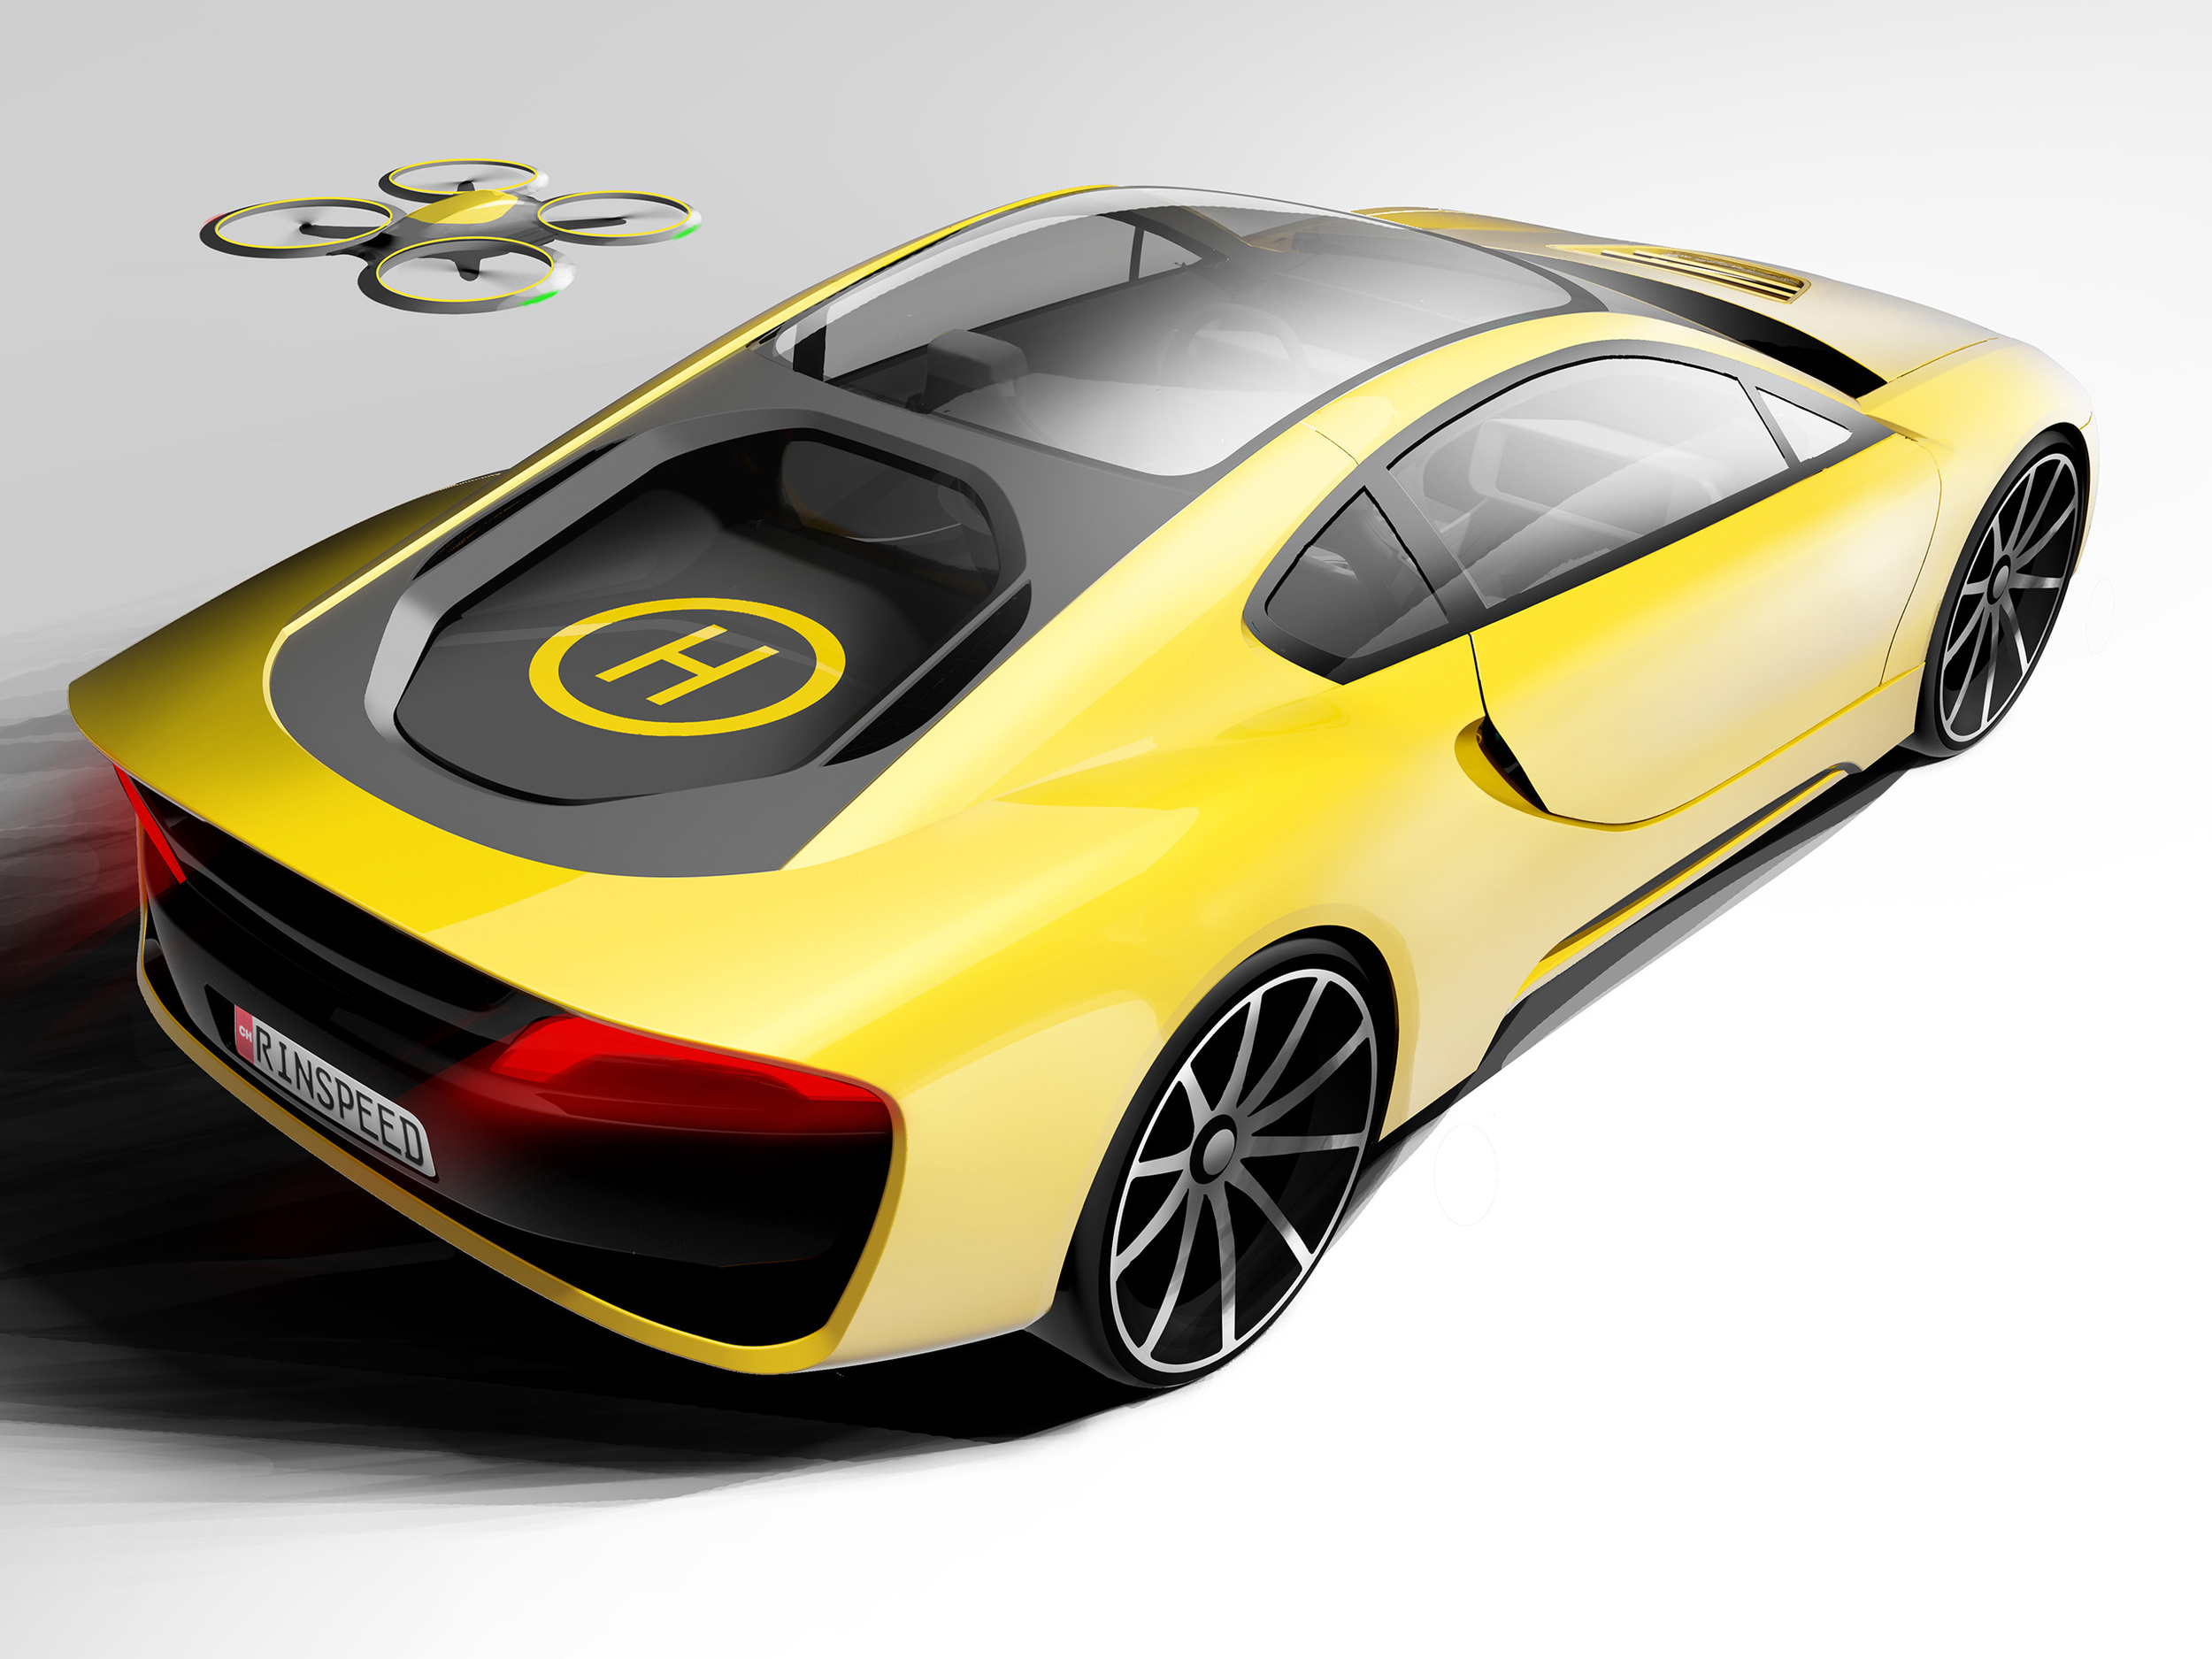 Rinspeed reveals new driverless Etos concept car